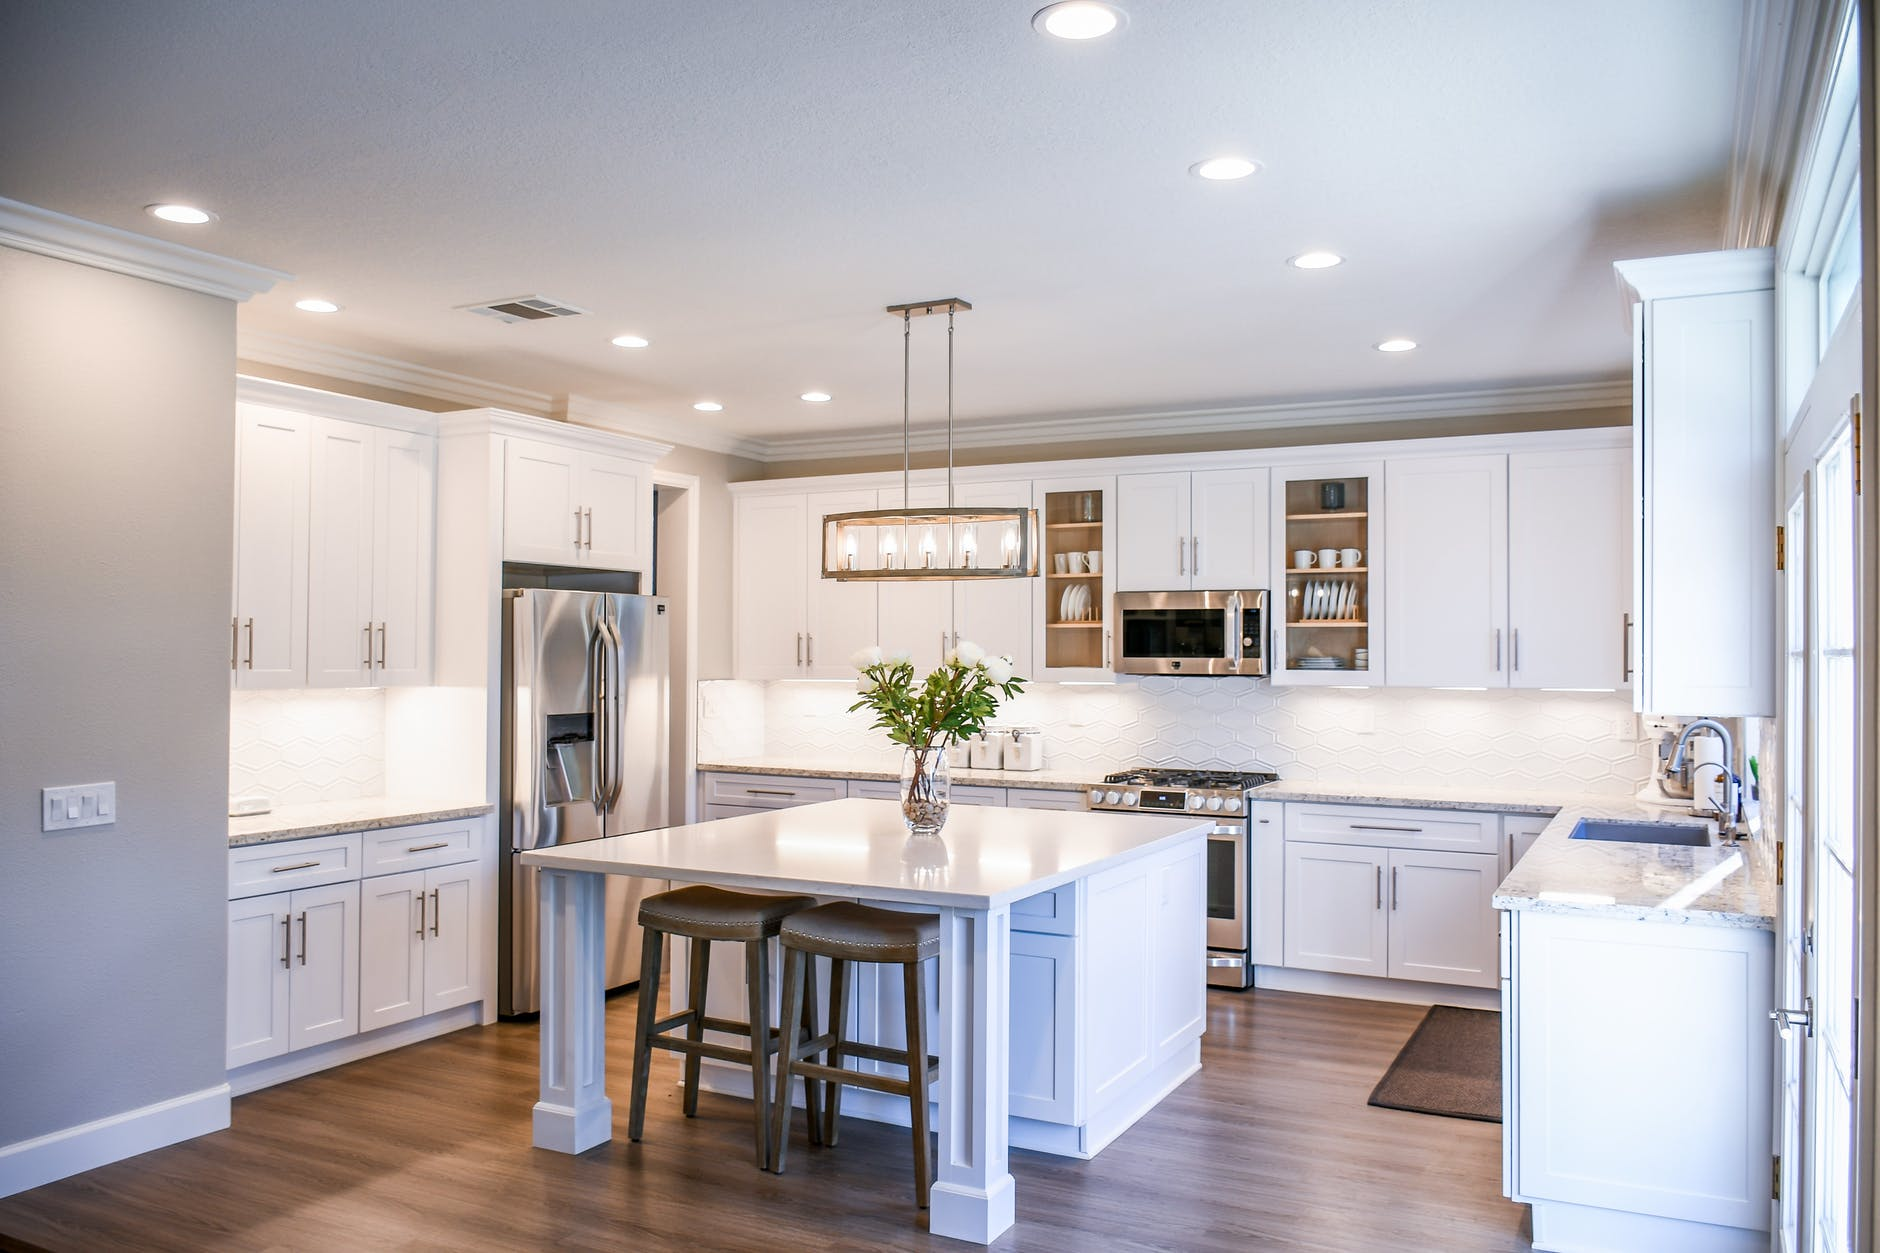 Top Ideas for Your New Kitchen Layout